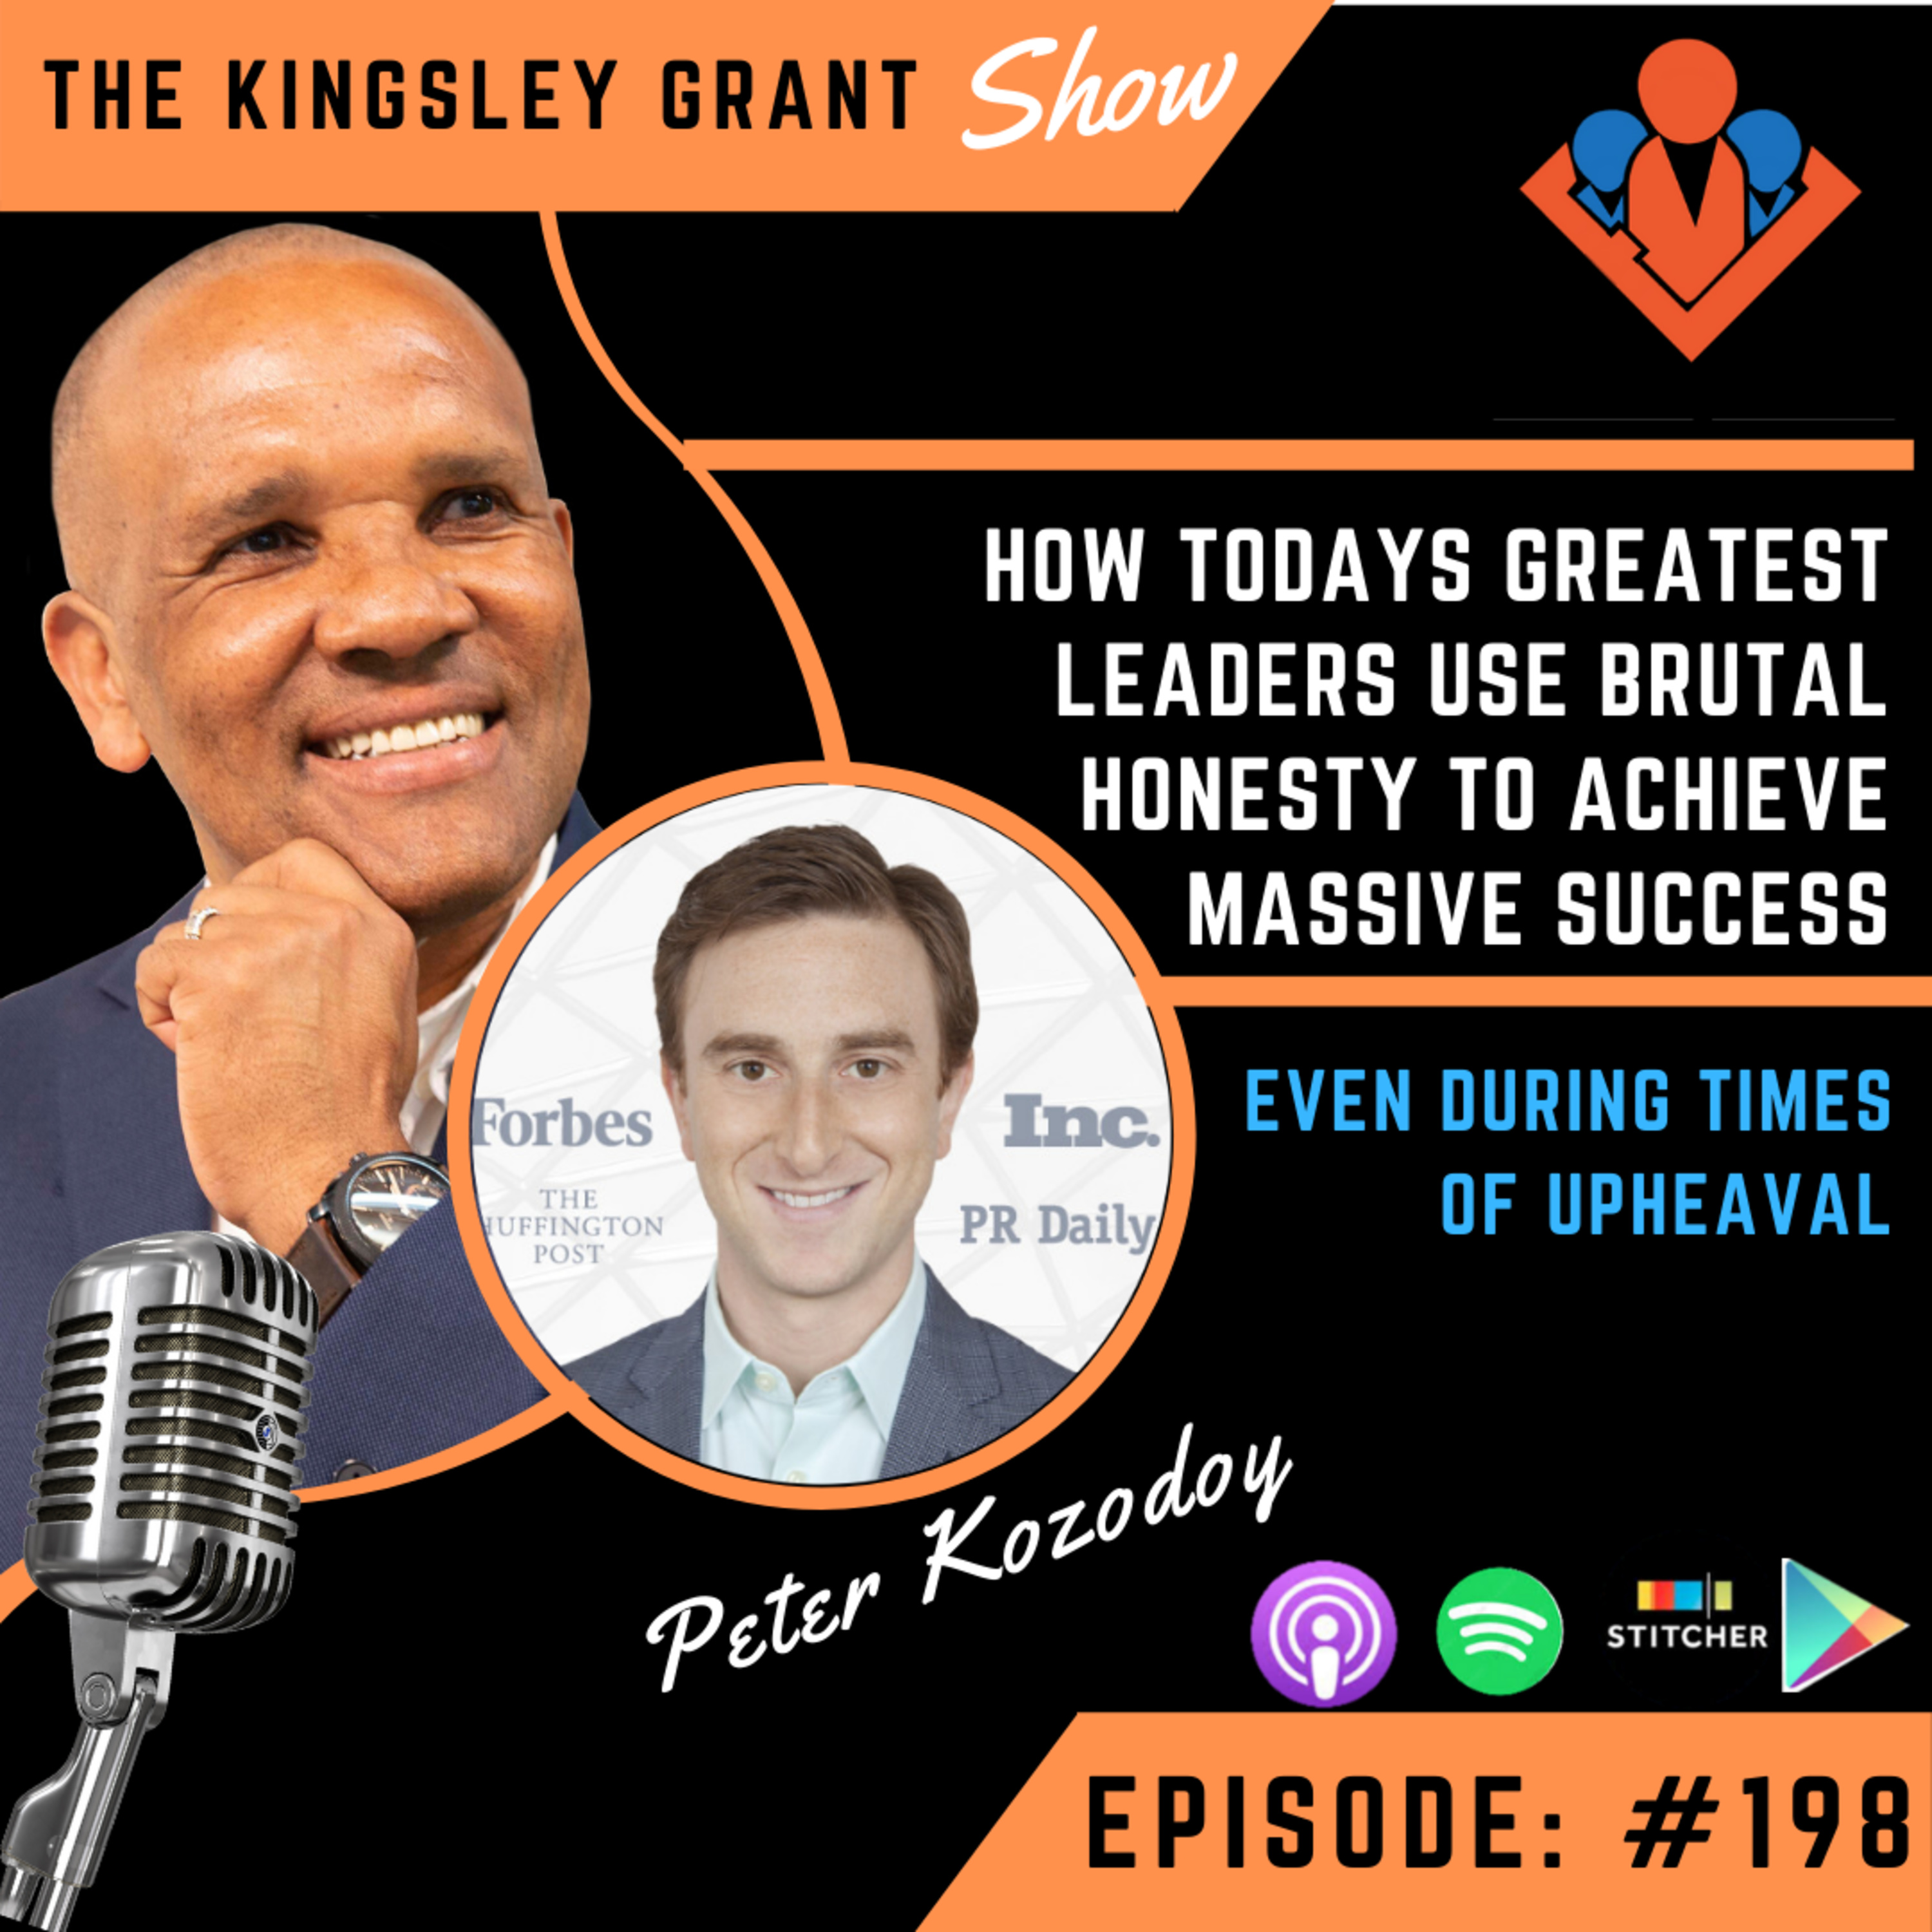 KGS198 | How Todays Greatest Leaders Use Brutal Honesty to Achieve Massive Success Even During Times of Upheaval by Peter Kozodoy and Kingsley Grant